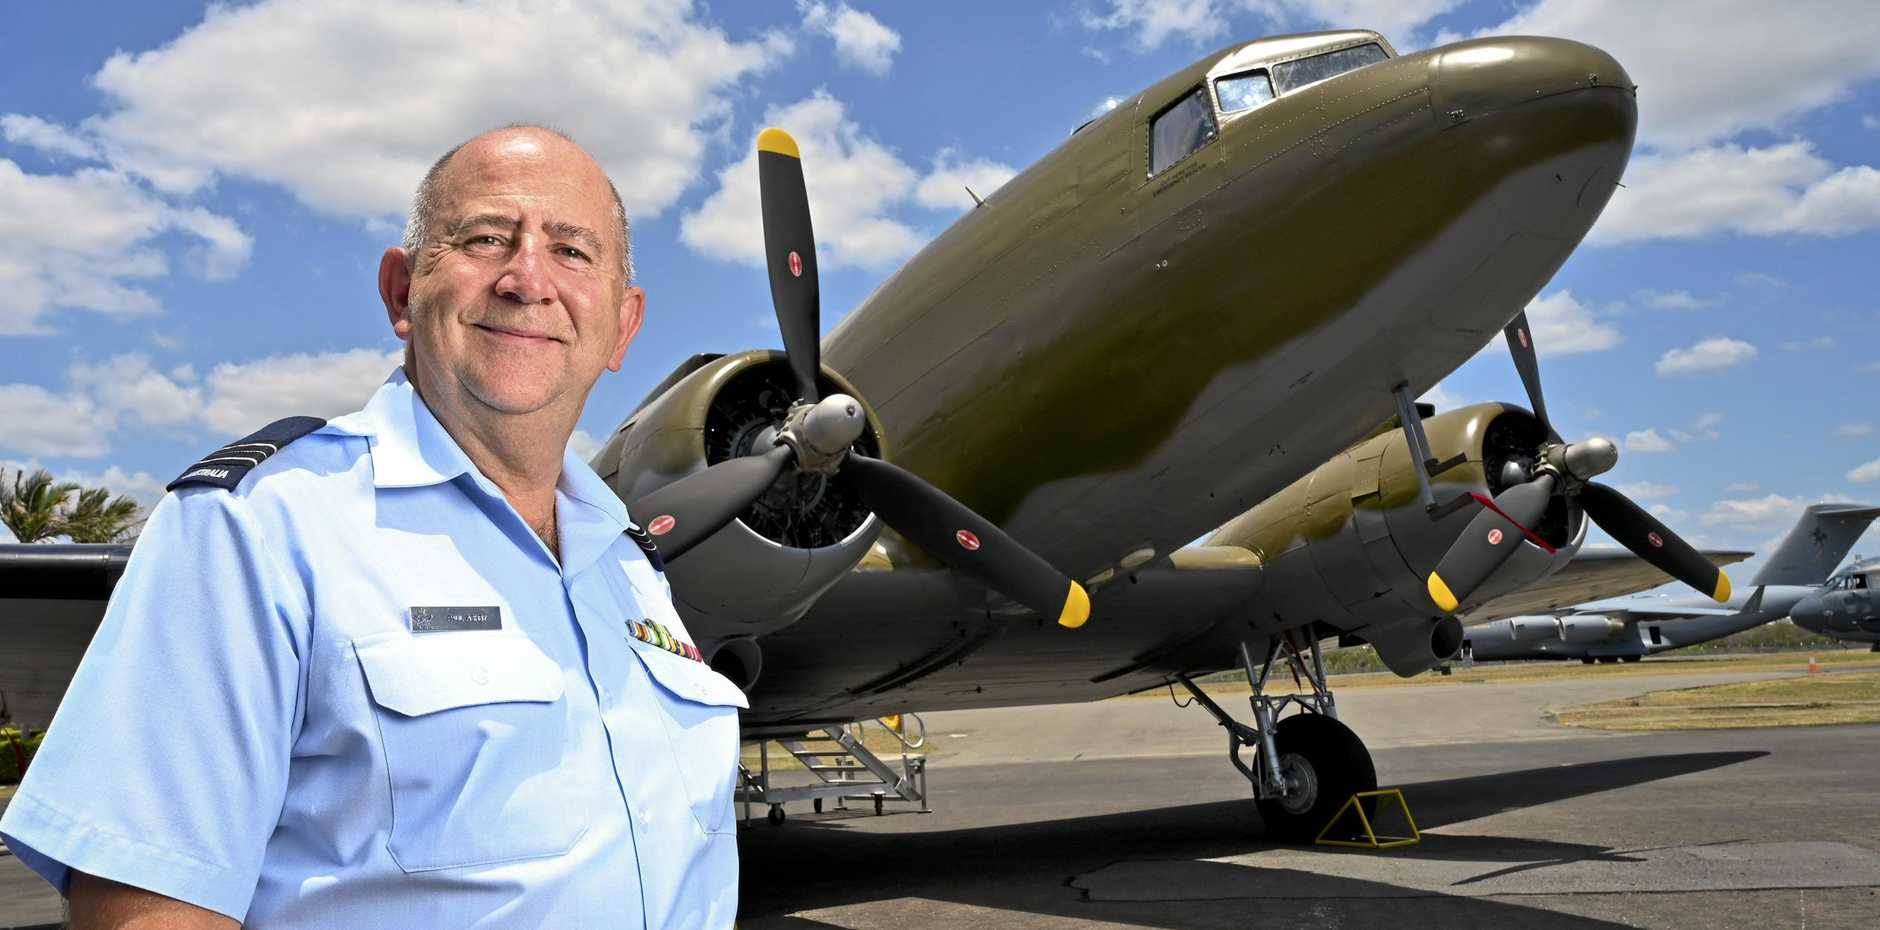 OPEN DAY: Douglas Dakota C-47B A65-86 at the RAAF Amberley Aviation Heritage Centre. Squadron Leader Paul Ashby.